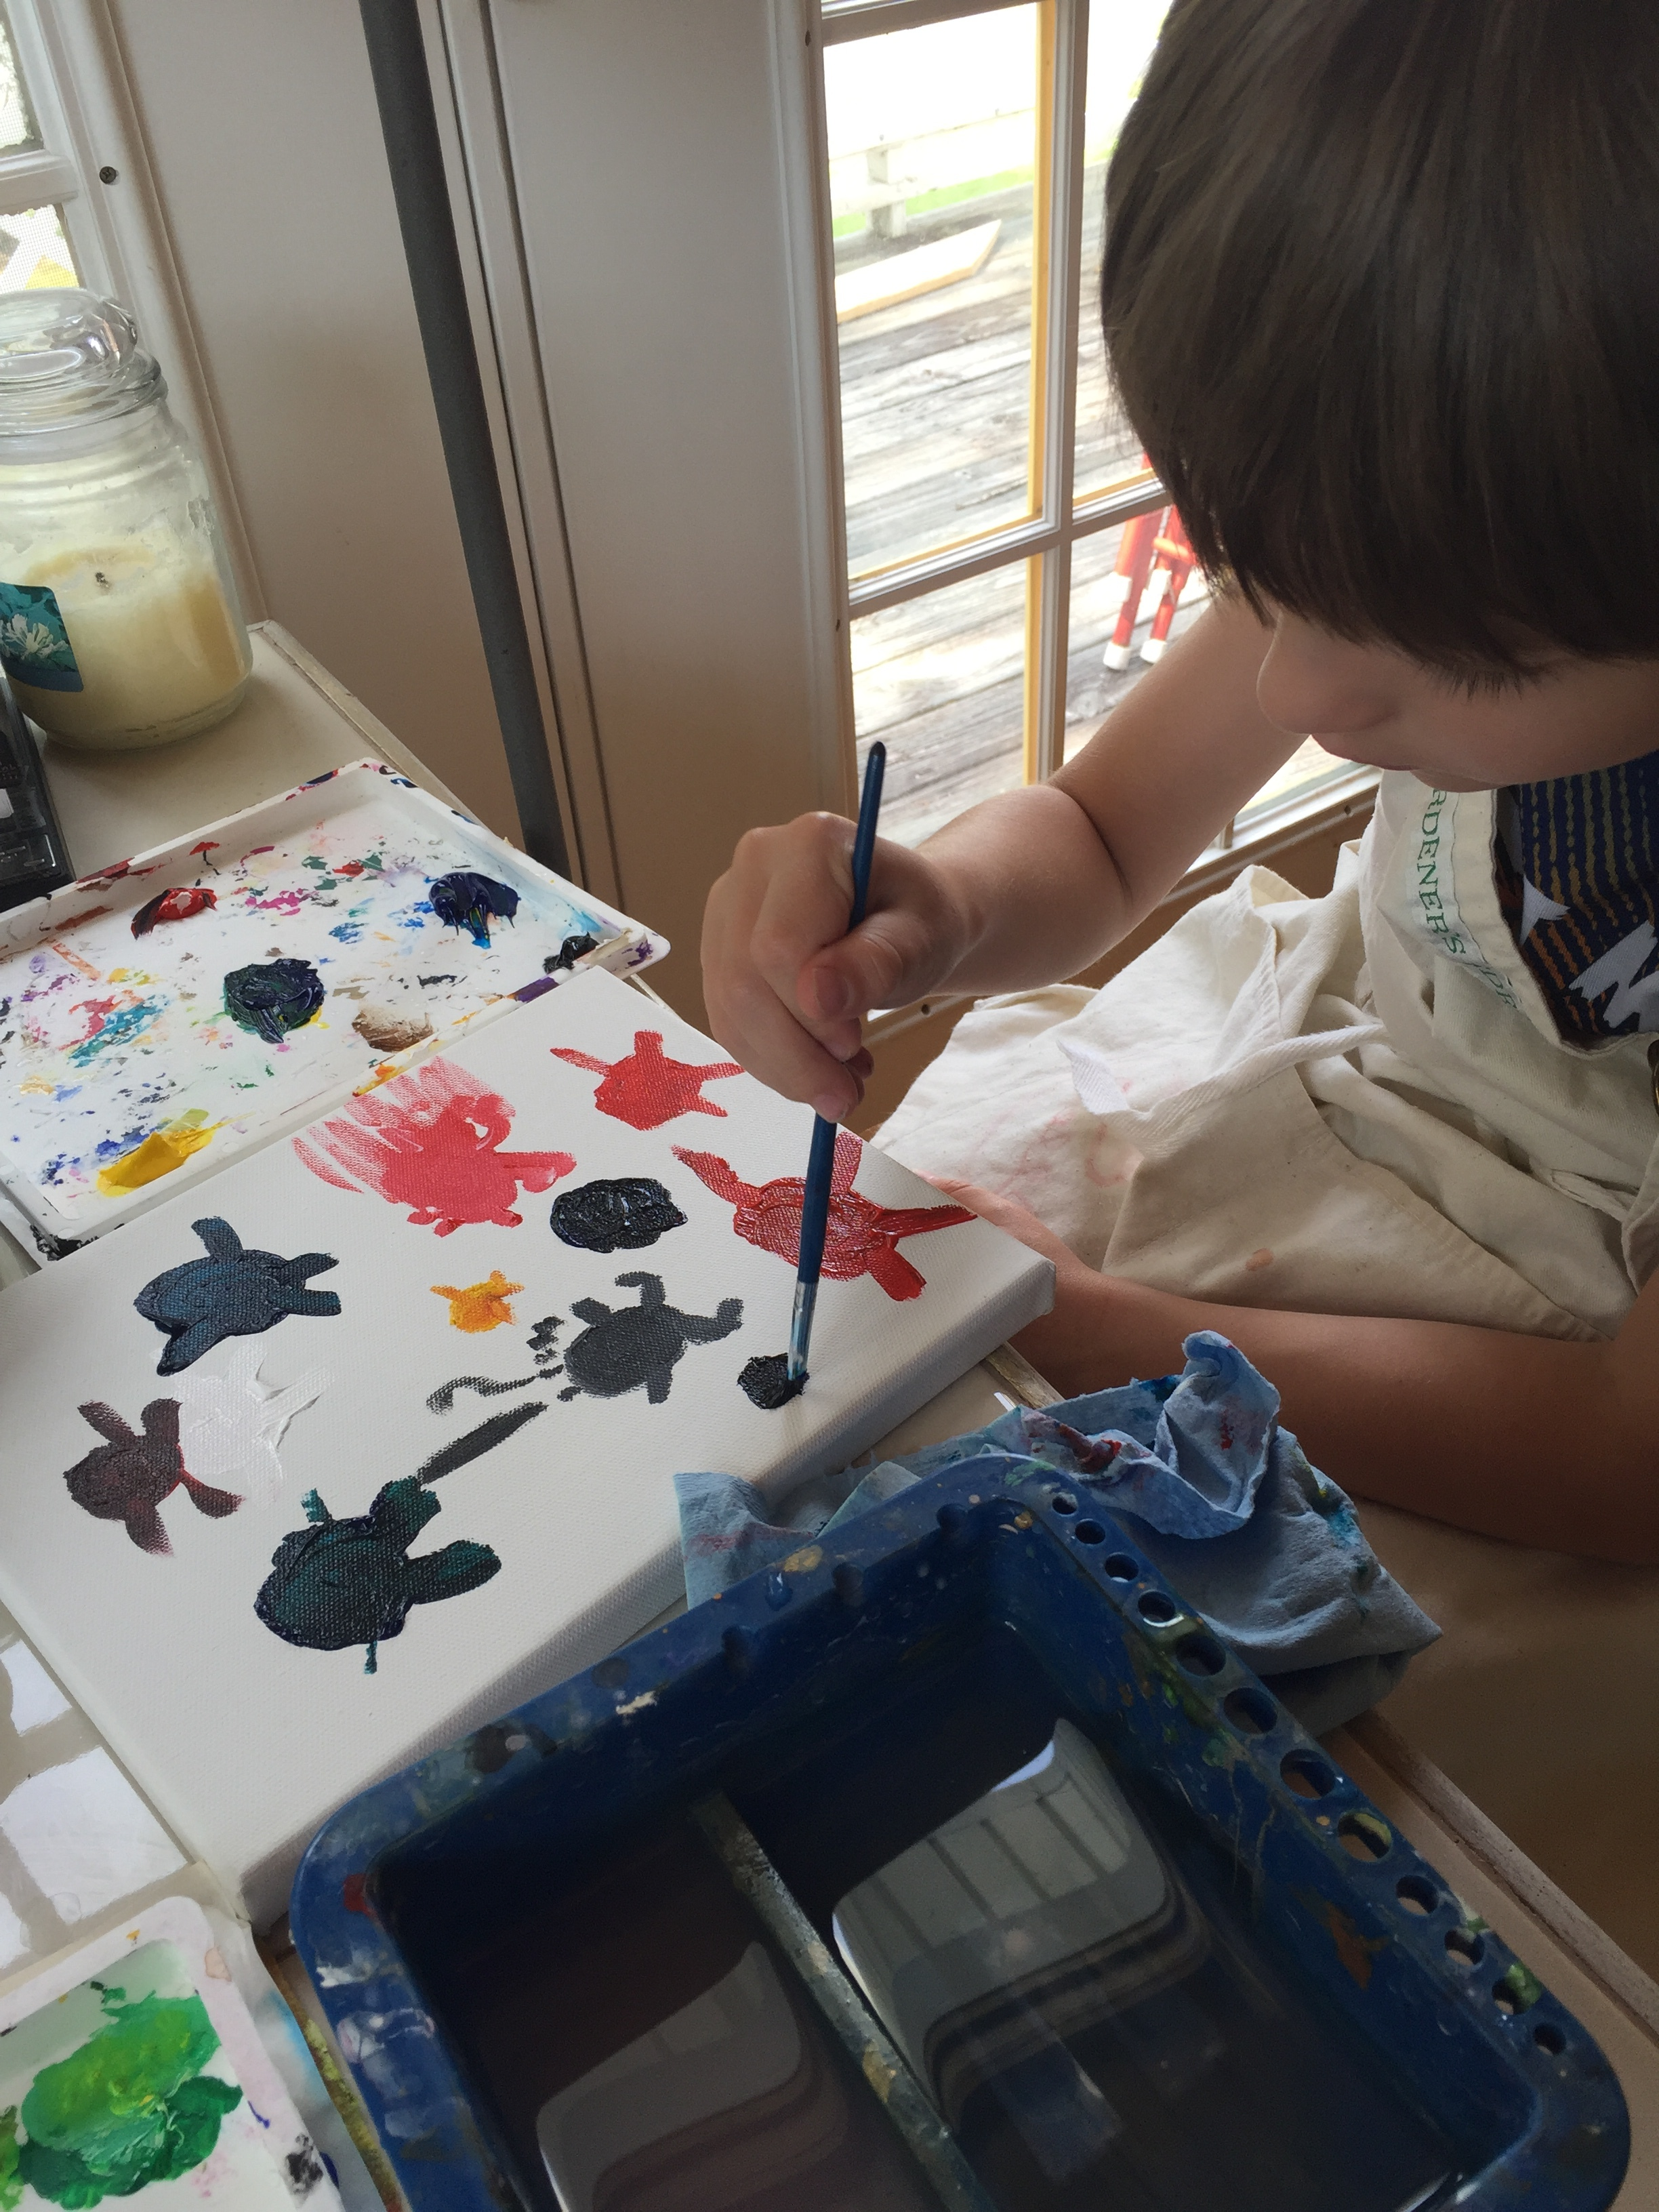 Painting with my grandson. Do not use photo without permission.